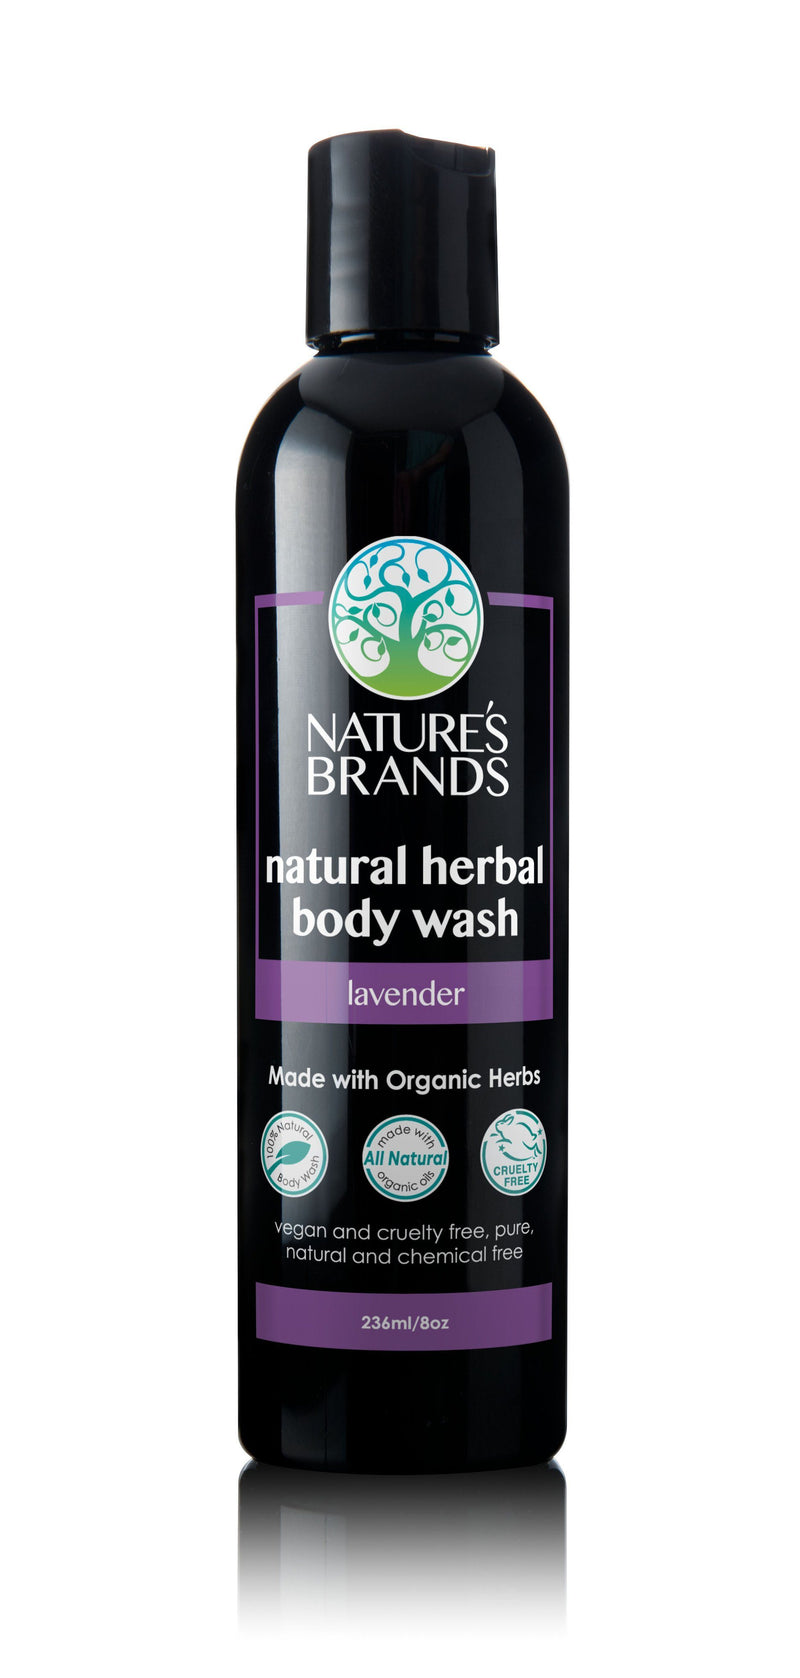 Herbal Choice Mari Organic Herbal Body Wash, Lavender - Herbal Choice Mari Organic Herbal Body Wash, Lavender - Herbal Choice Mari Organic Herbal Body Wash, Lavender